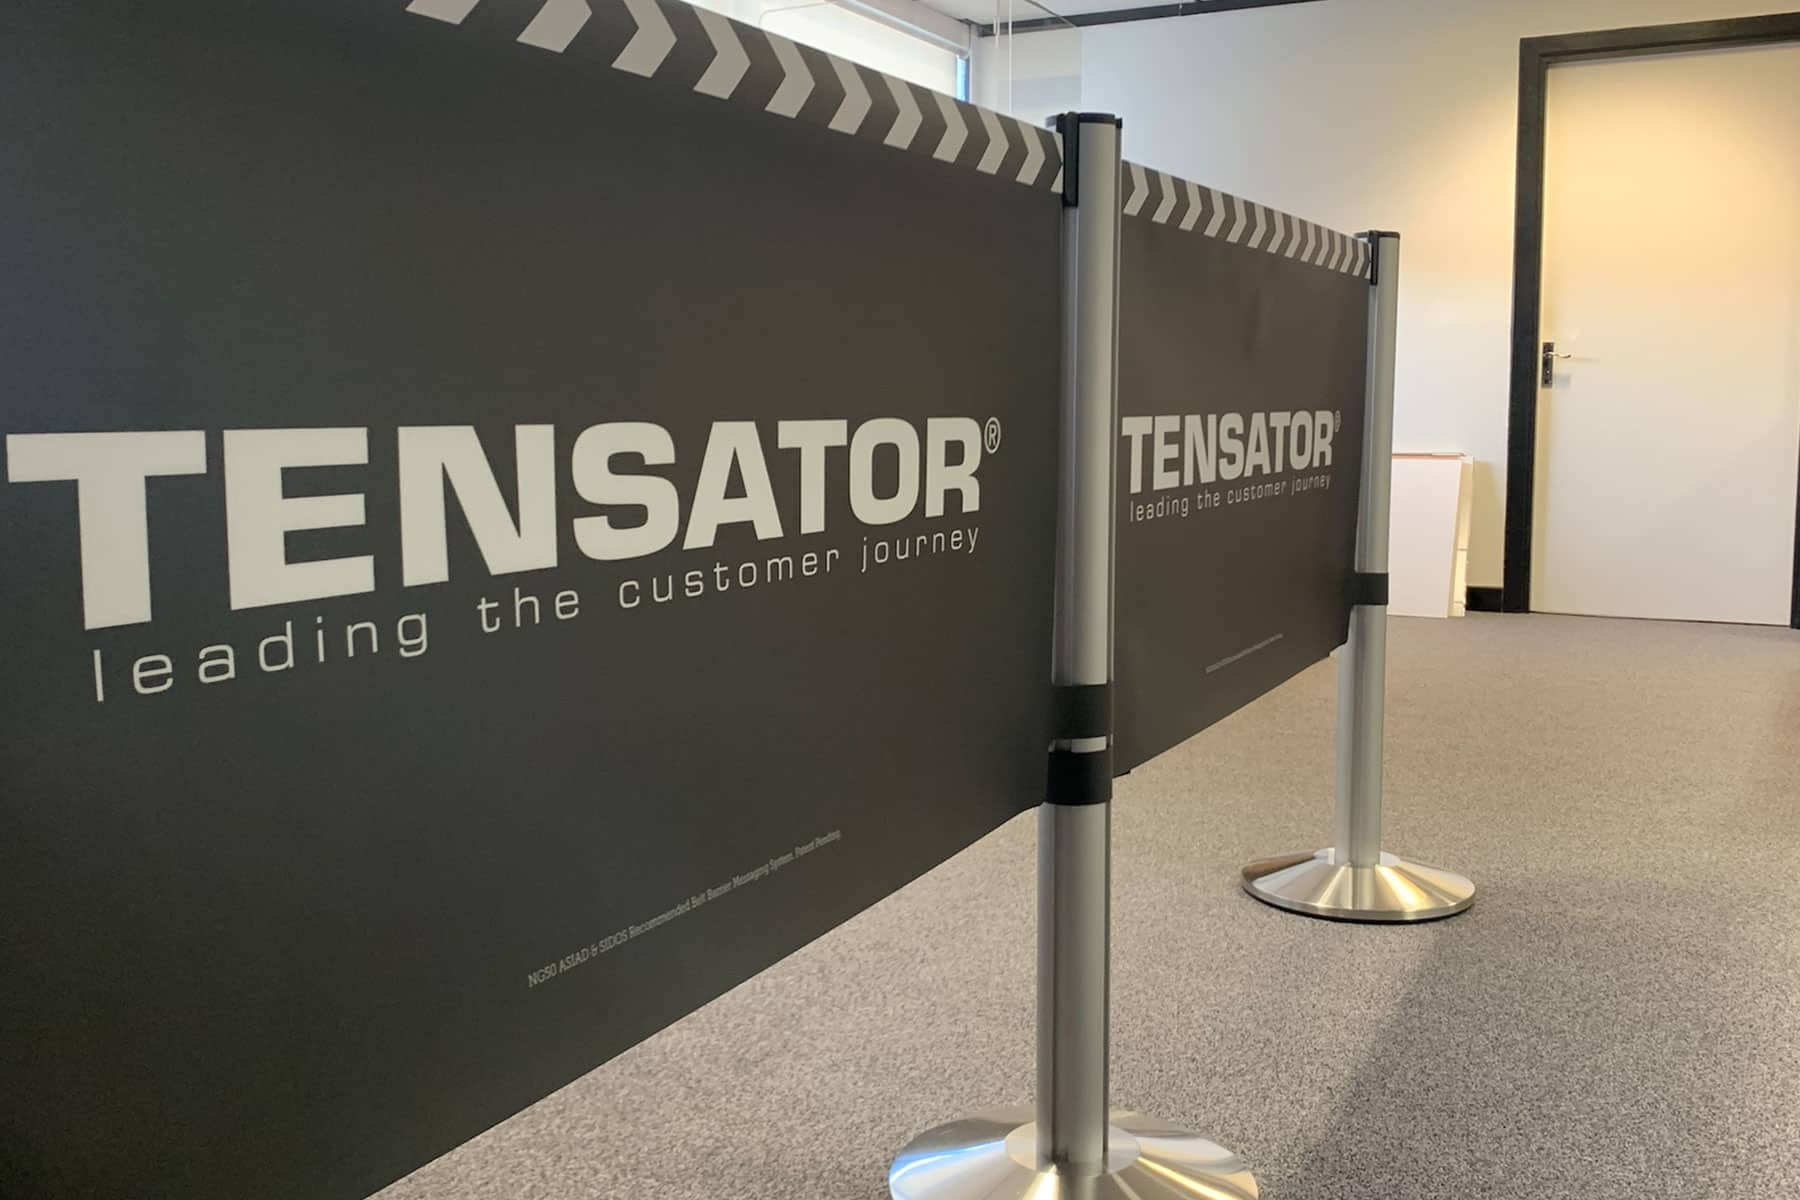 custom airport barriers and graphics